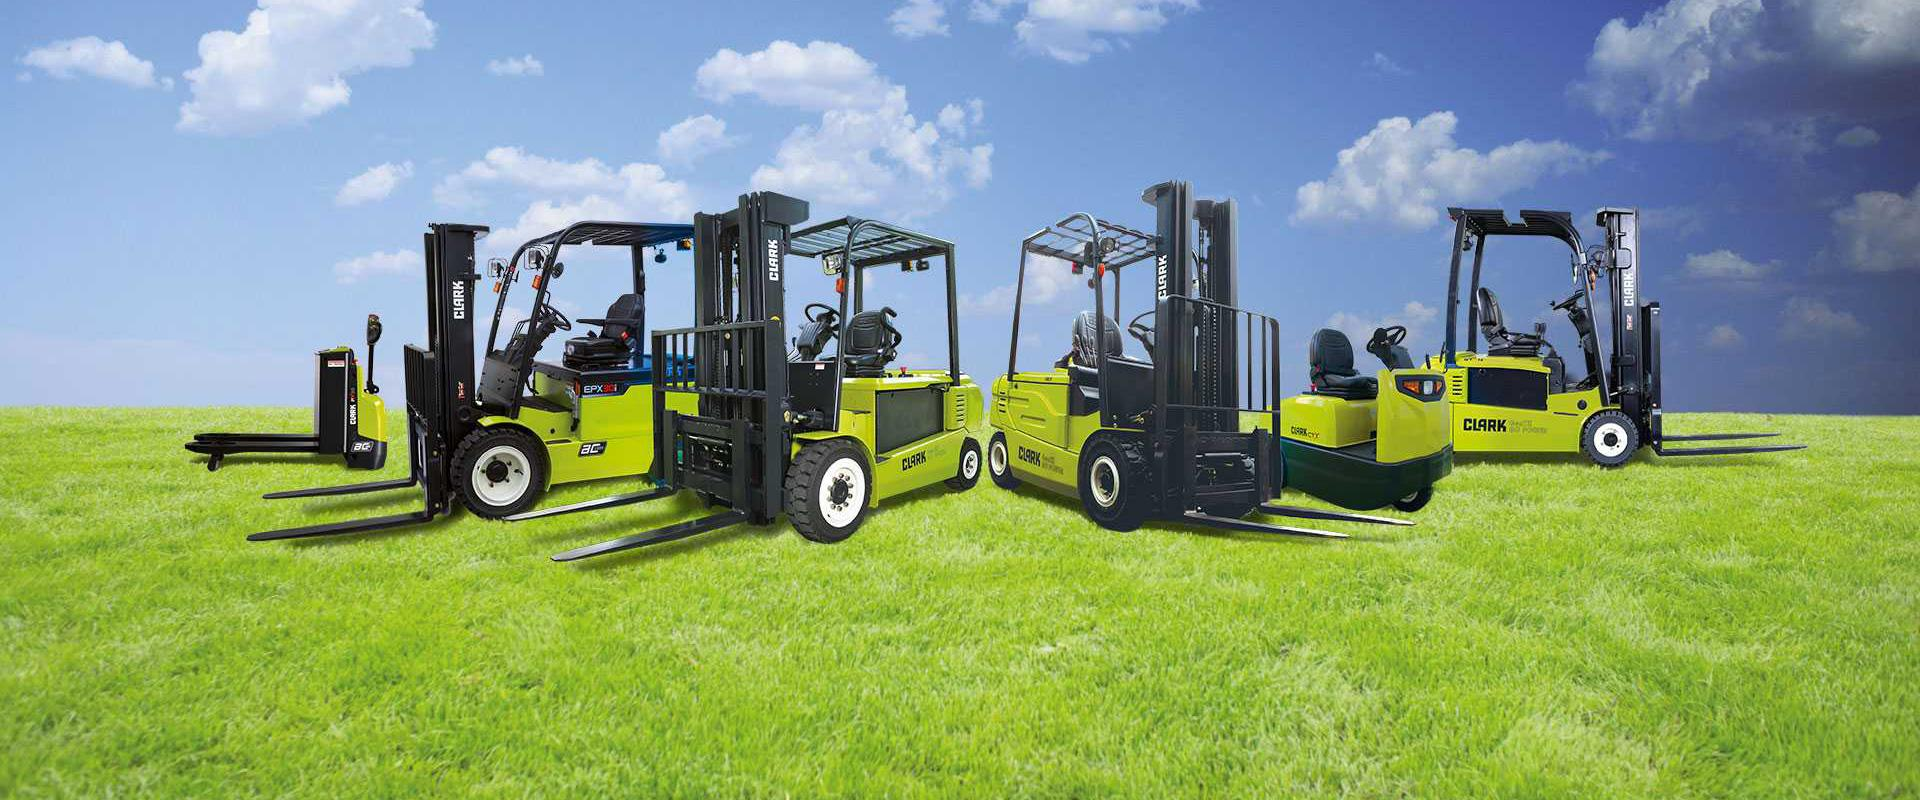 GREEN. CLEAN. EFFICIENT. – THE CLARK ELECTRIC FORKLIFTS